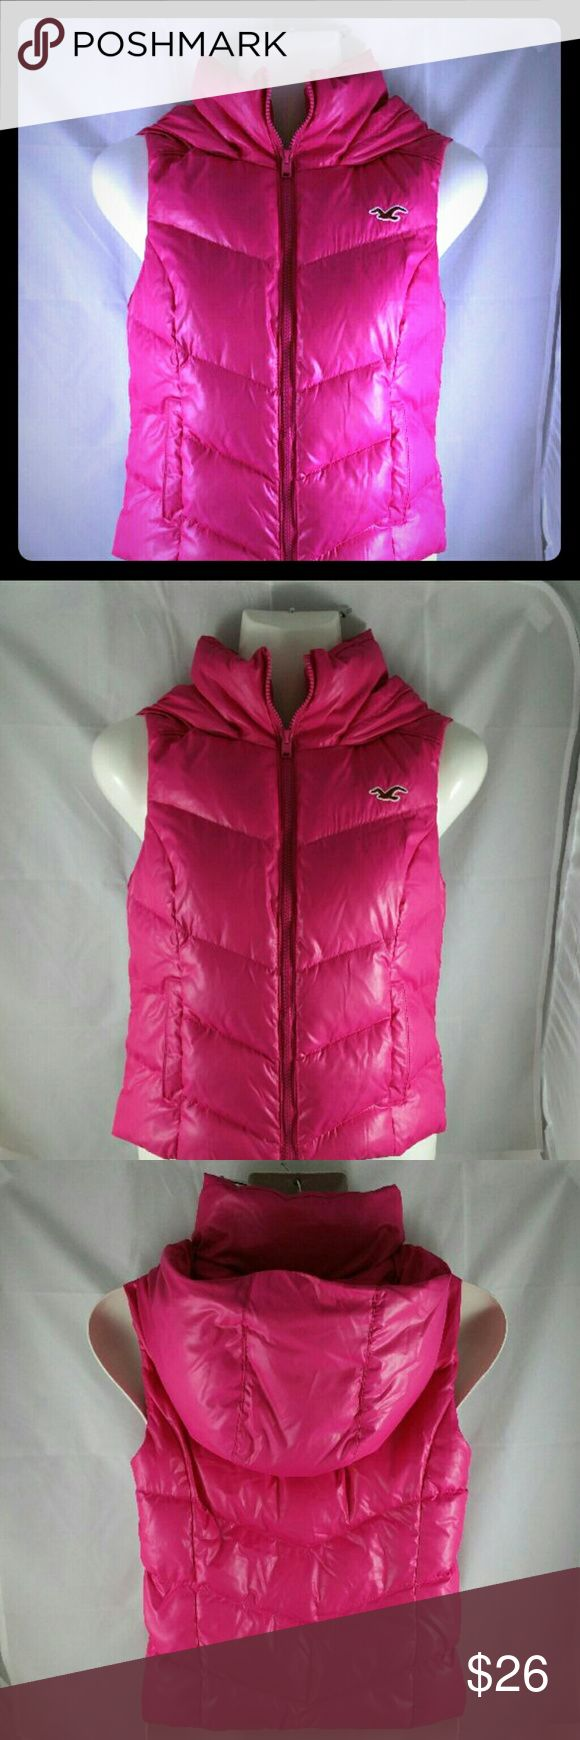 Hollister Puffer Jacket w/Hood Hollister Sleeveless Puffer Jacket With Hood Size - XS Two (2) front pockets 100% polyester  Brand: Hollister  Color: Bright Pink Hollister Jackets & Coats